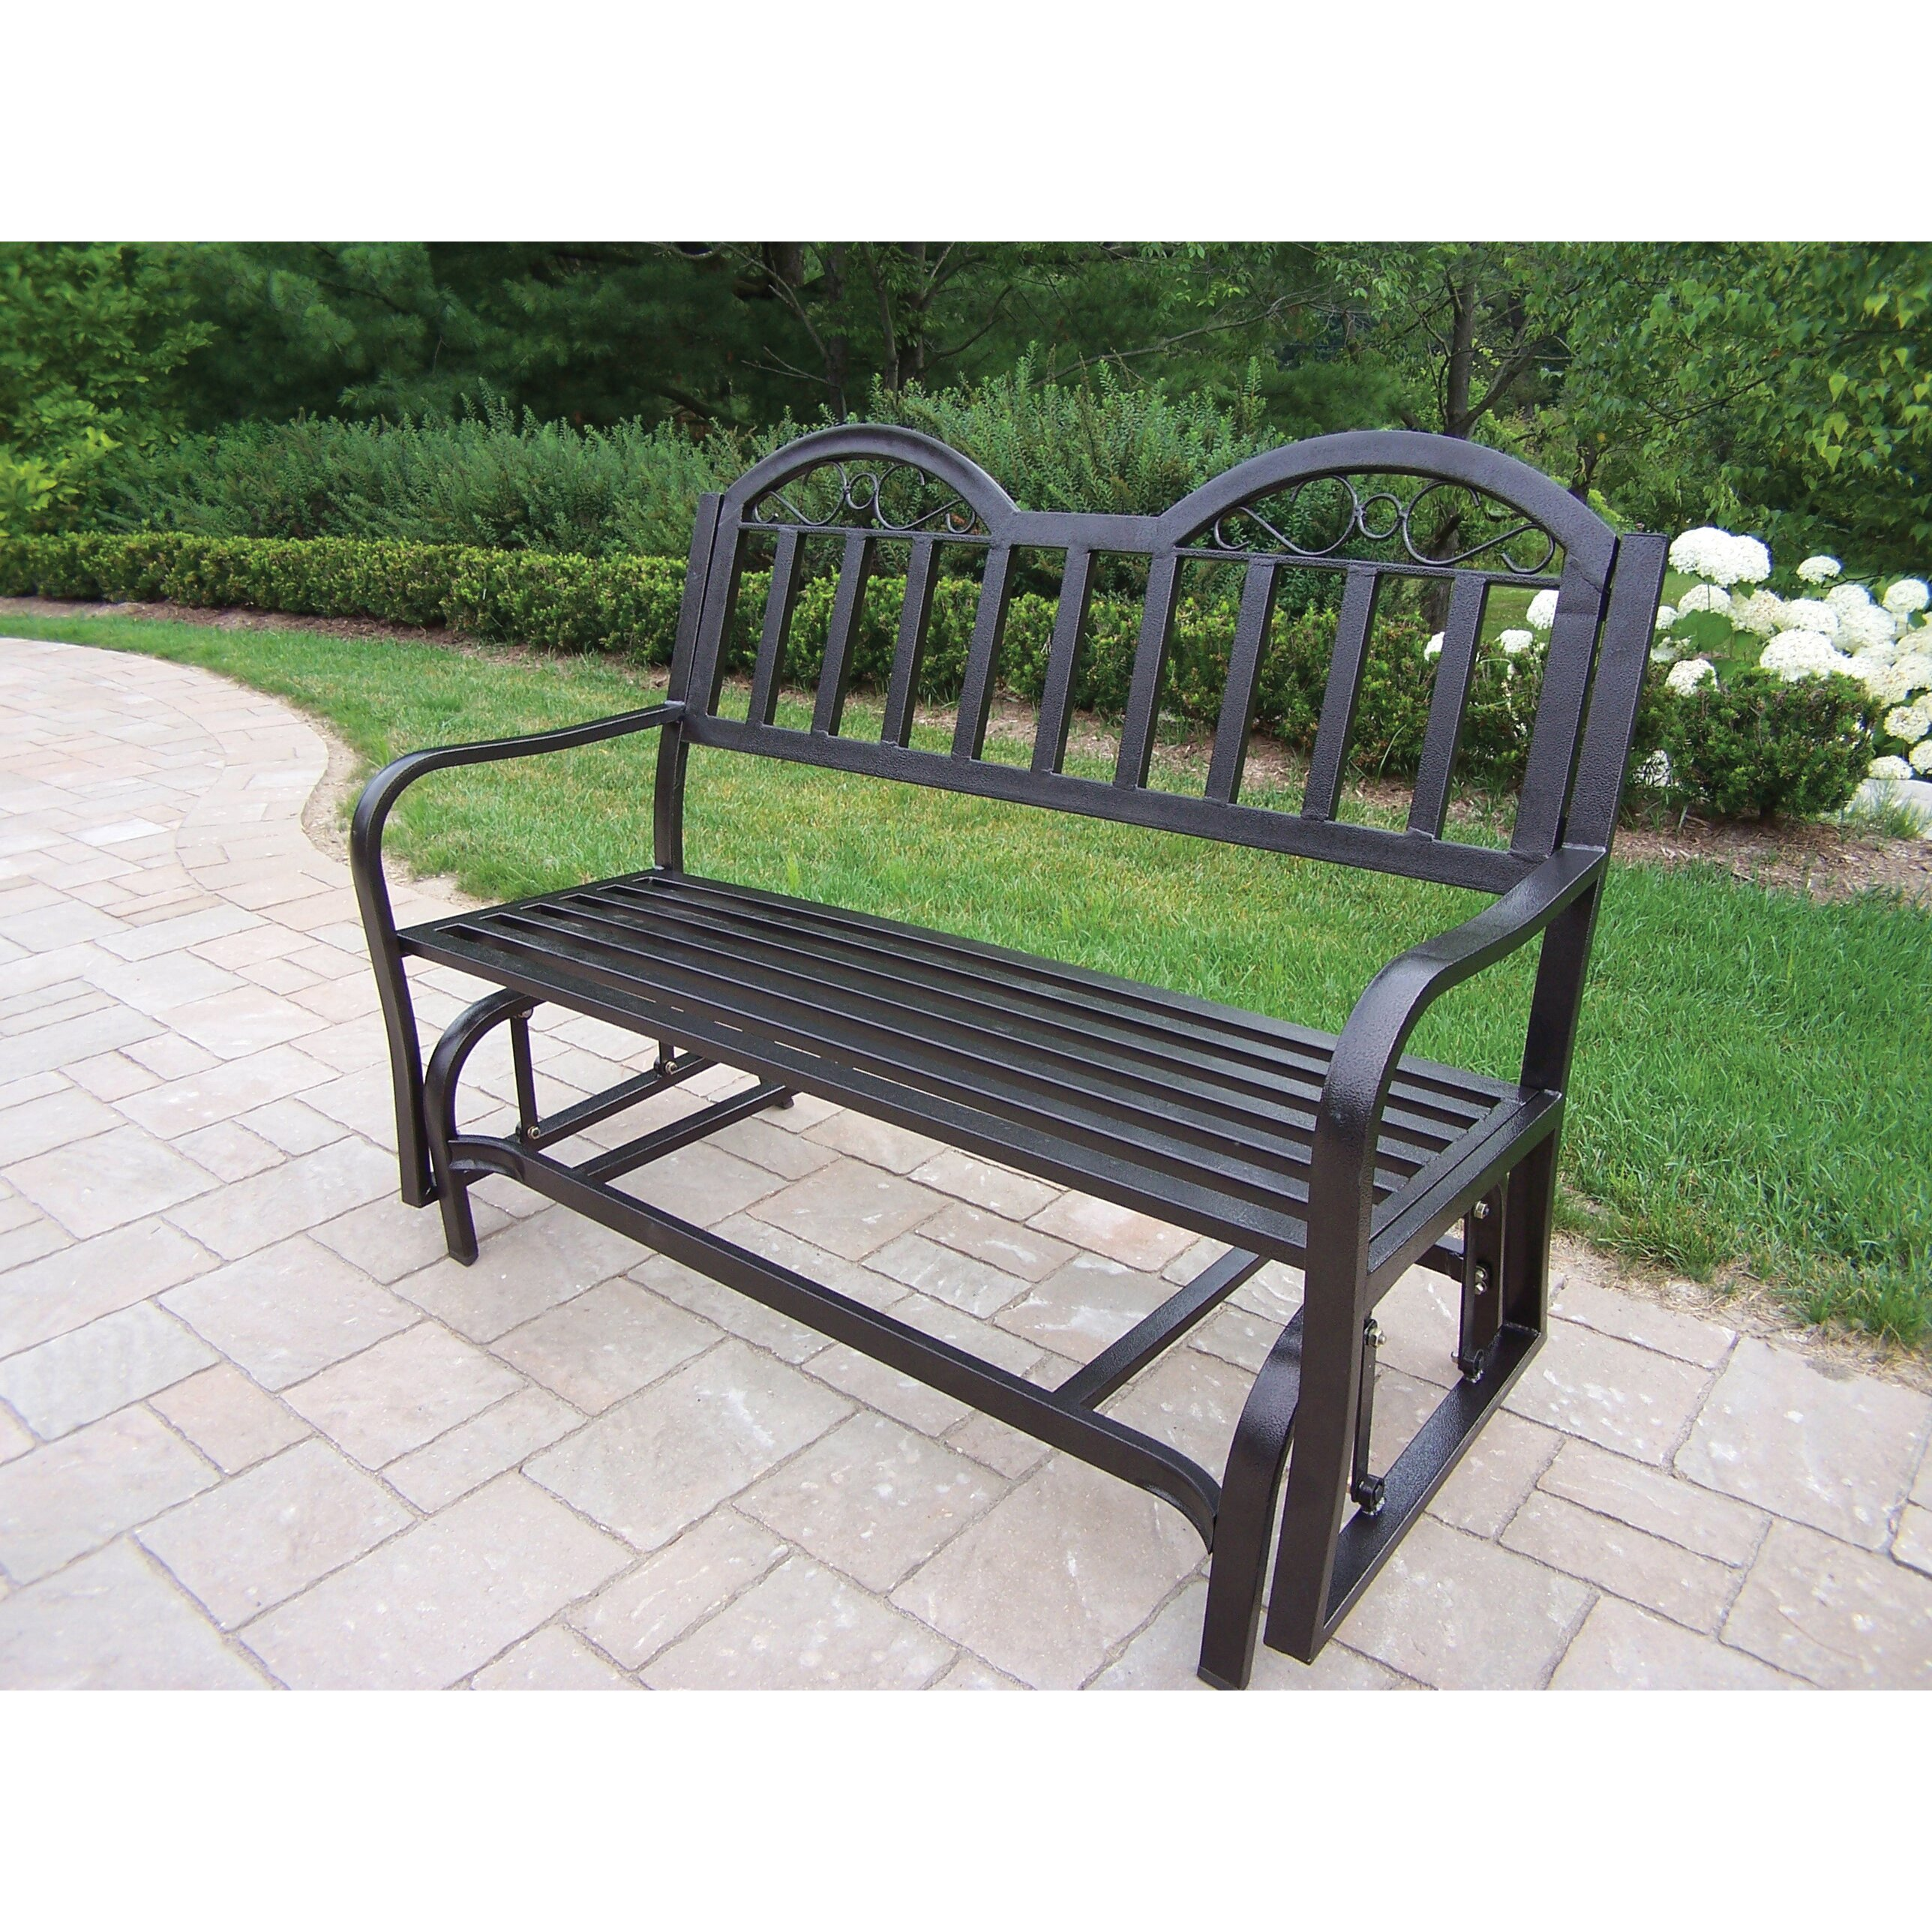 Outdoor Patio Furniture Rochester Ny: Oakland Living Rochester Glider & Reviews